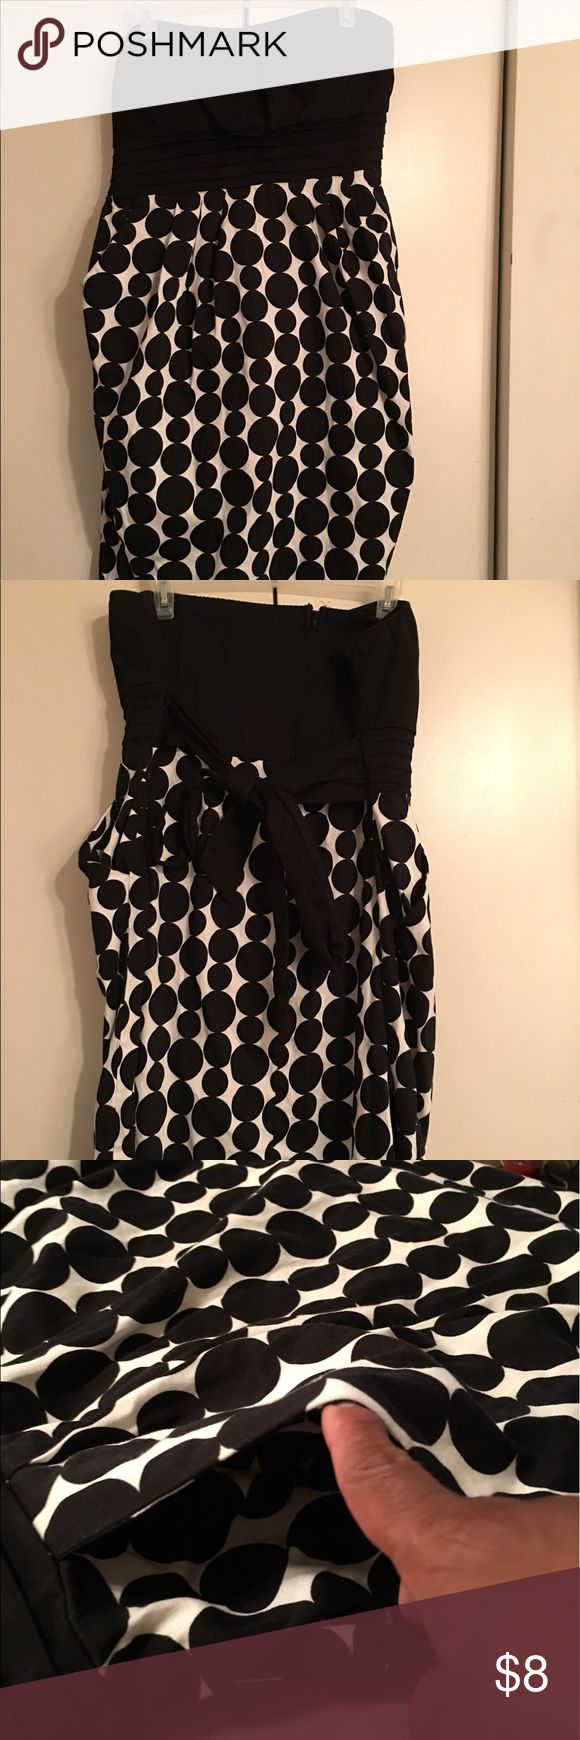 SNAP black and white polka dot strapless dress Strapless dress that's great for a night out or for the party scene. It's lightly padded. Used. Has been worn a few times. Snap Dresses Strapless